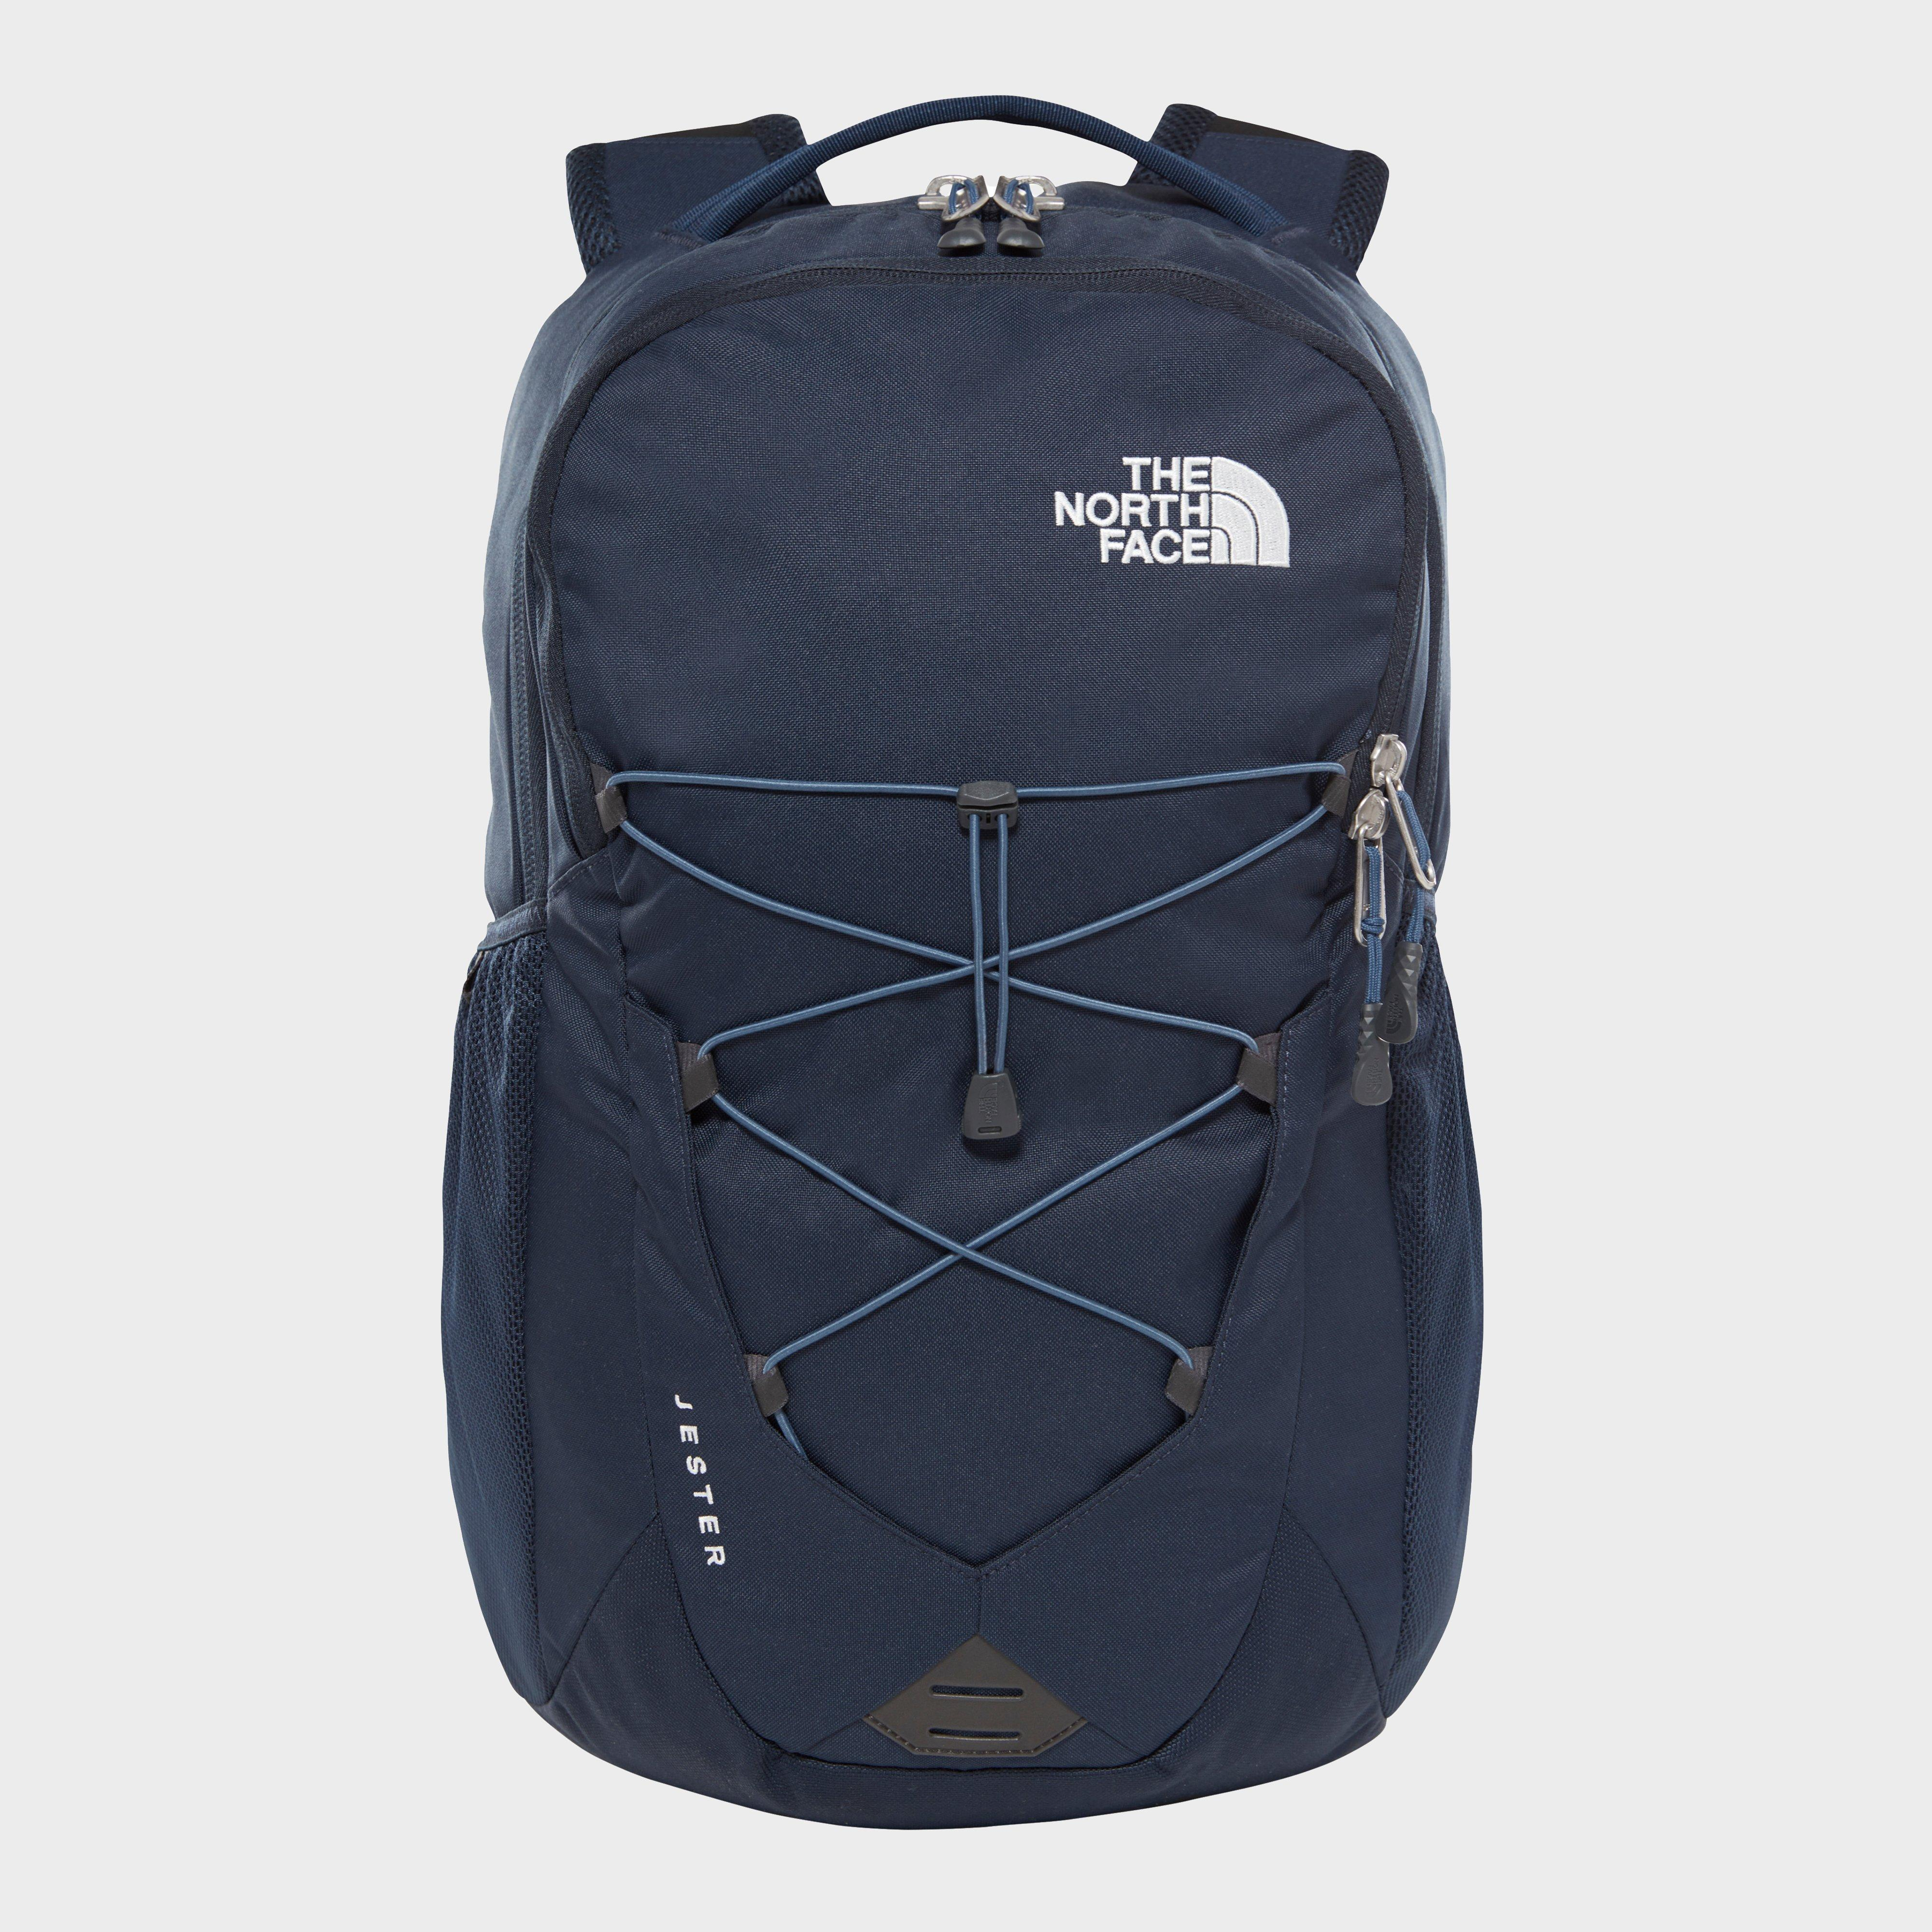 89f9c9f0c88b The North Face Jester Backpack